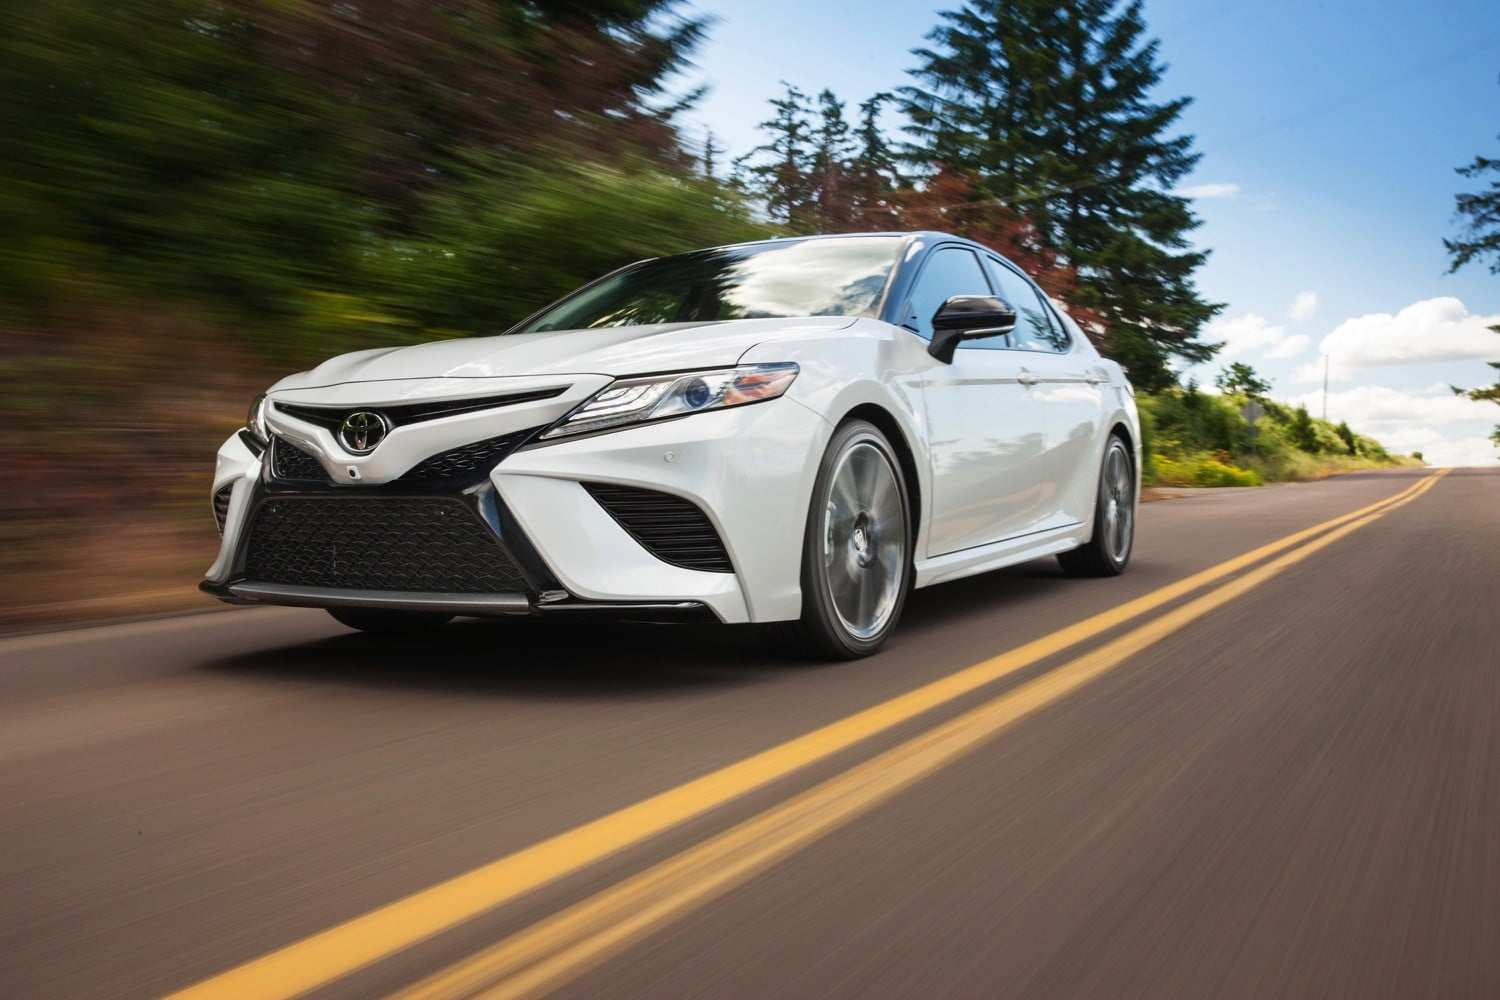 91 Best Review Best 2019 Toyota Camry Xle V6 Review And Price Price and Review with Best 2019 Toyota Camry Xle V6 Review And Price